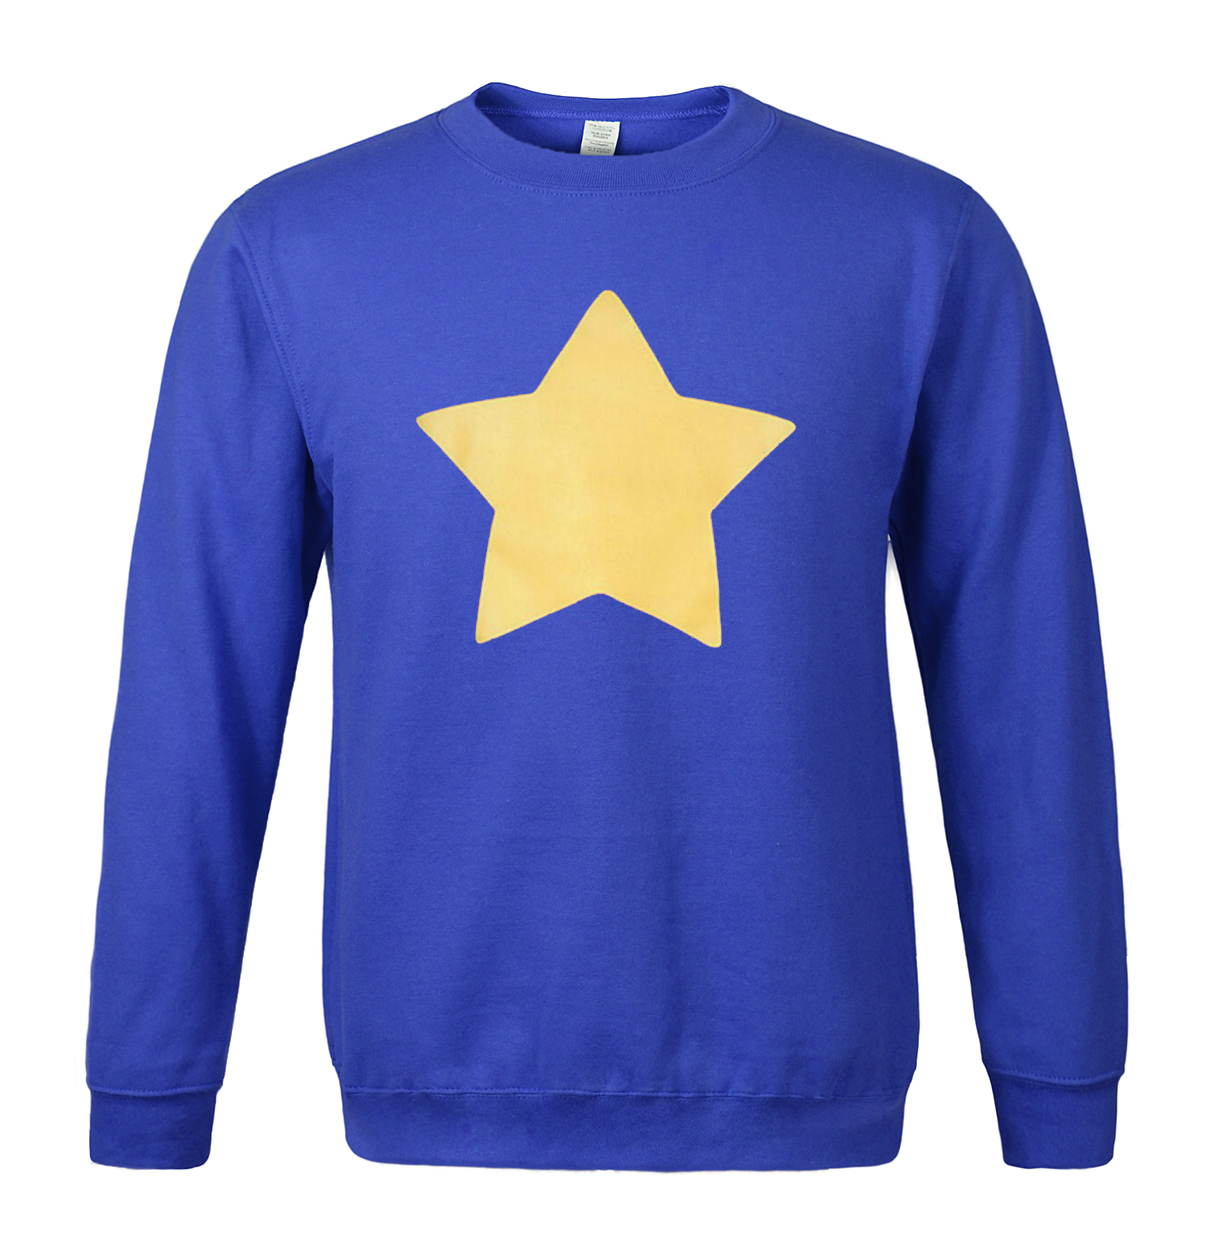 STEVEN UNIVERSE STAR men sweatshirts 2018 spring winter warm fleece fashion men hoodies hip hop style streetwear brand-clothing